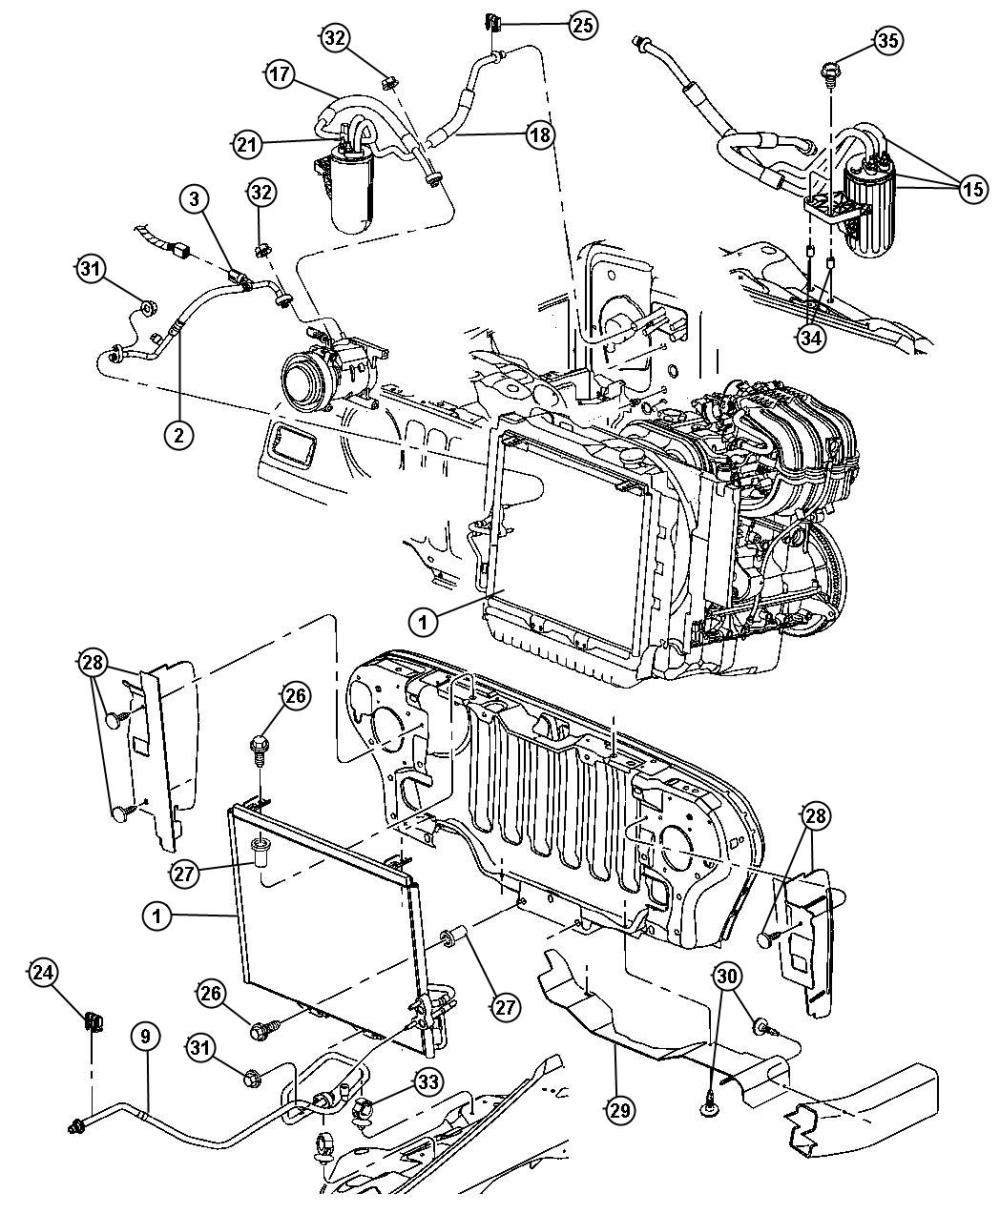 medium resolution of 2007 2015 jeep oem parts diagram 2007 free engine image jeep wrangler tj parts diagram jeep wrangler tj parts diagram